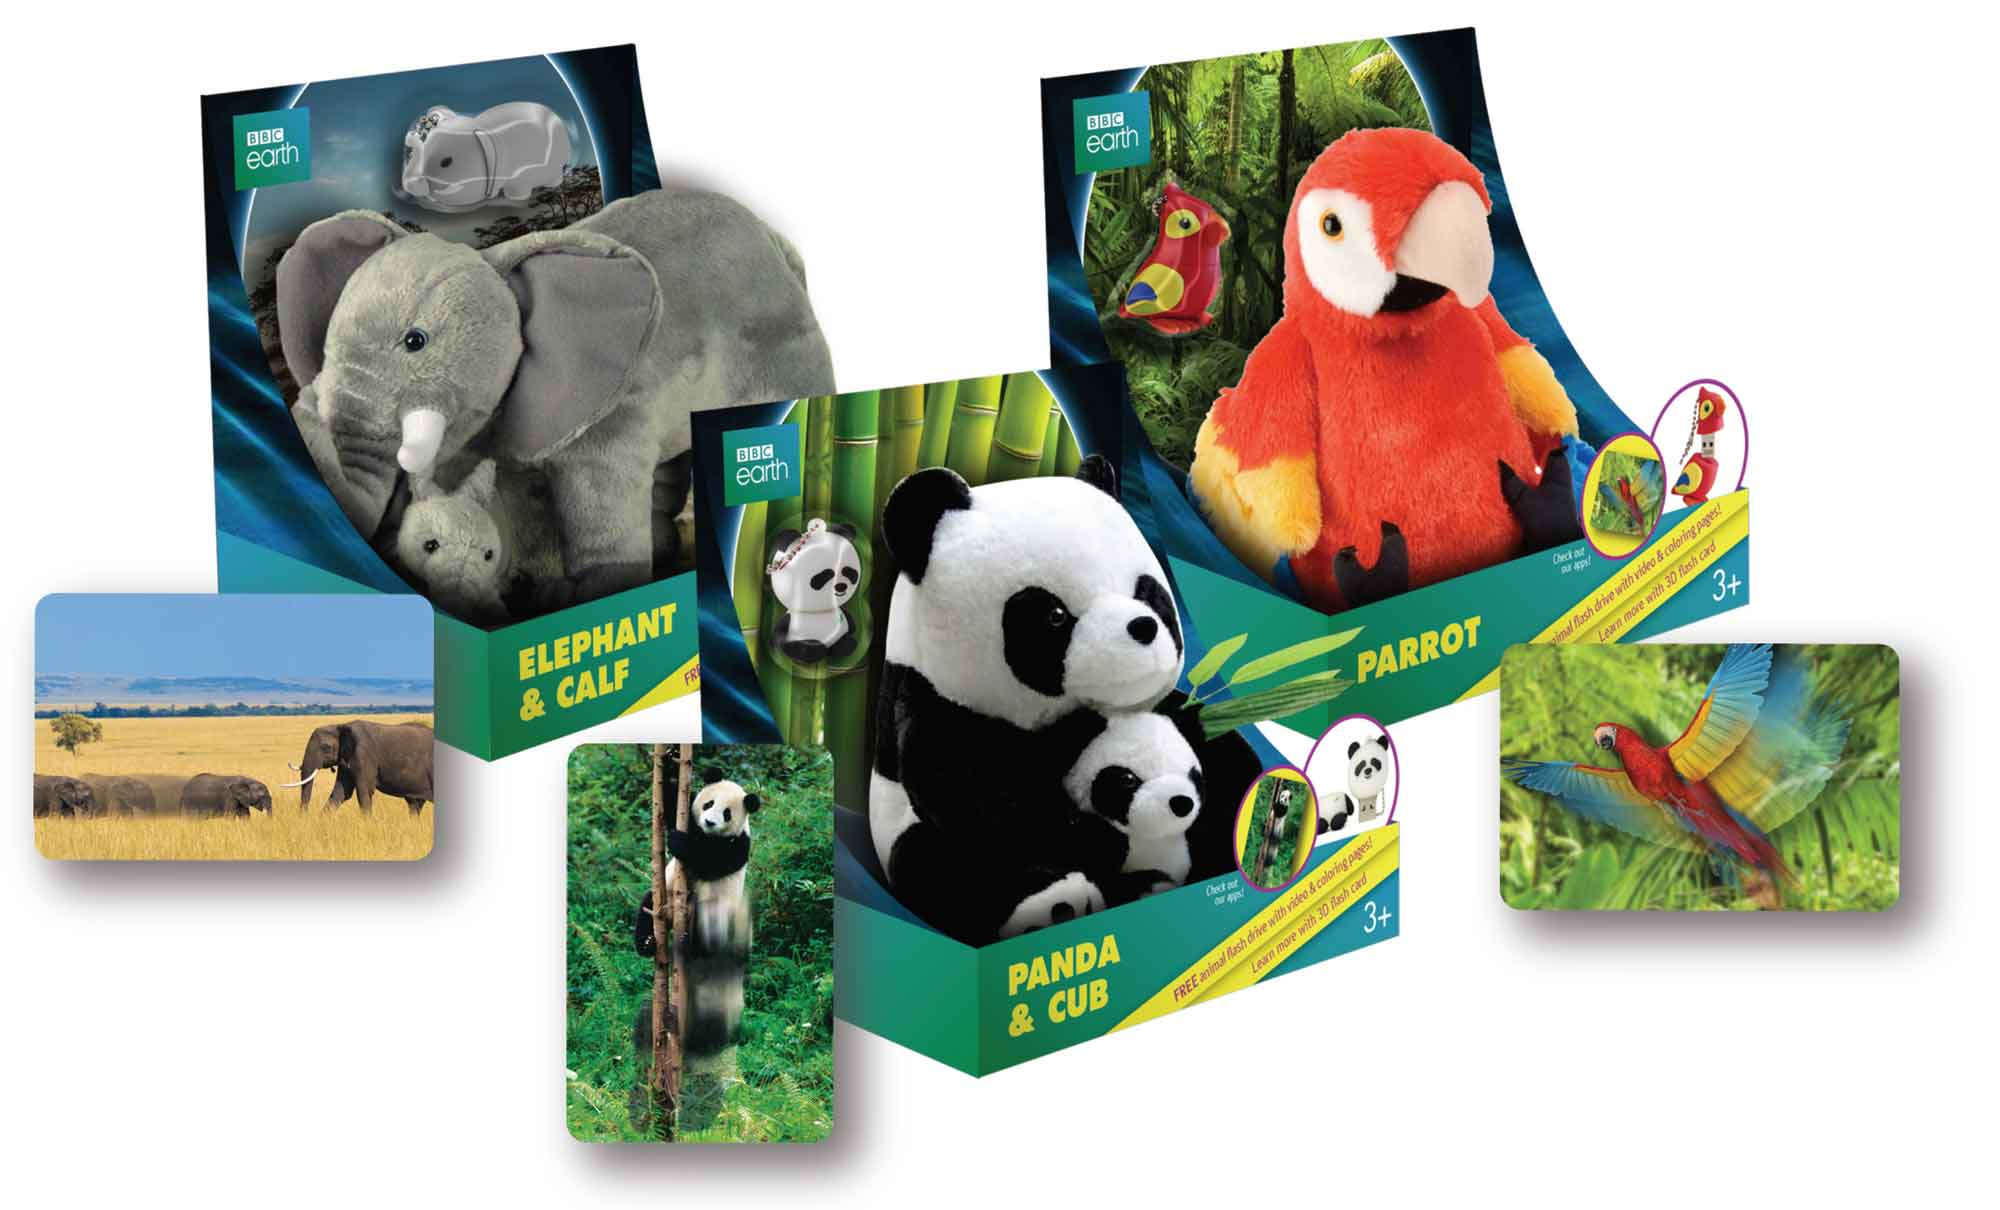 The BBC Earth brand of children's toys, science activities and equipment are designed to make the learning experience fun.